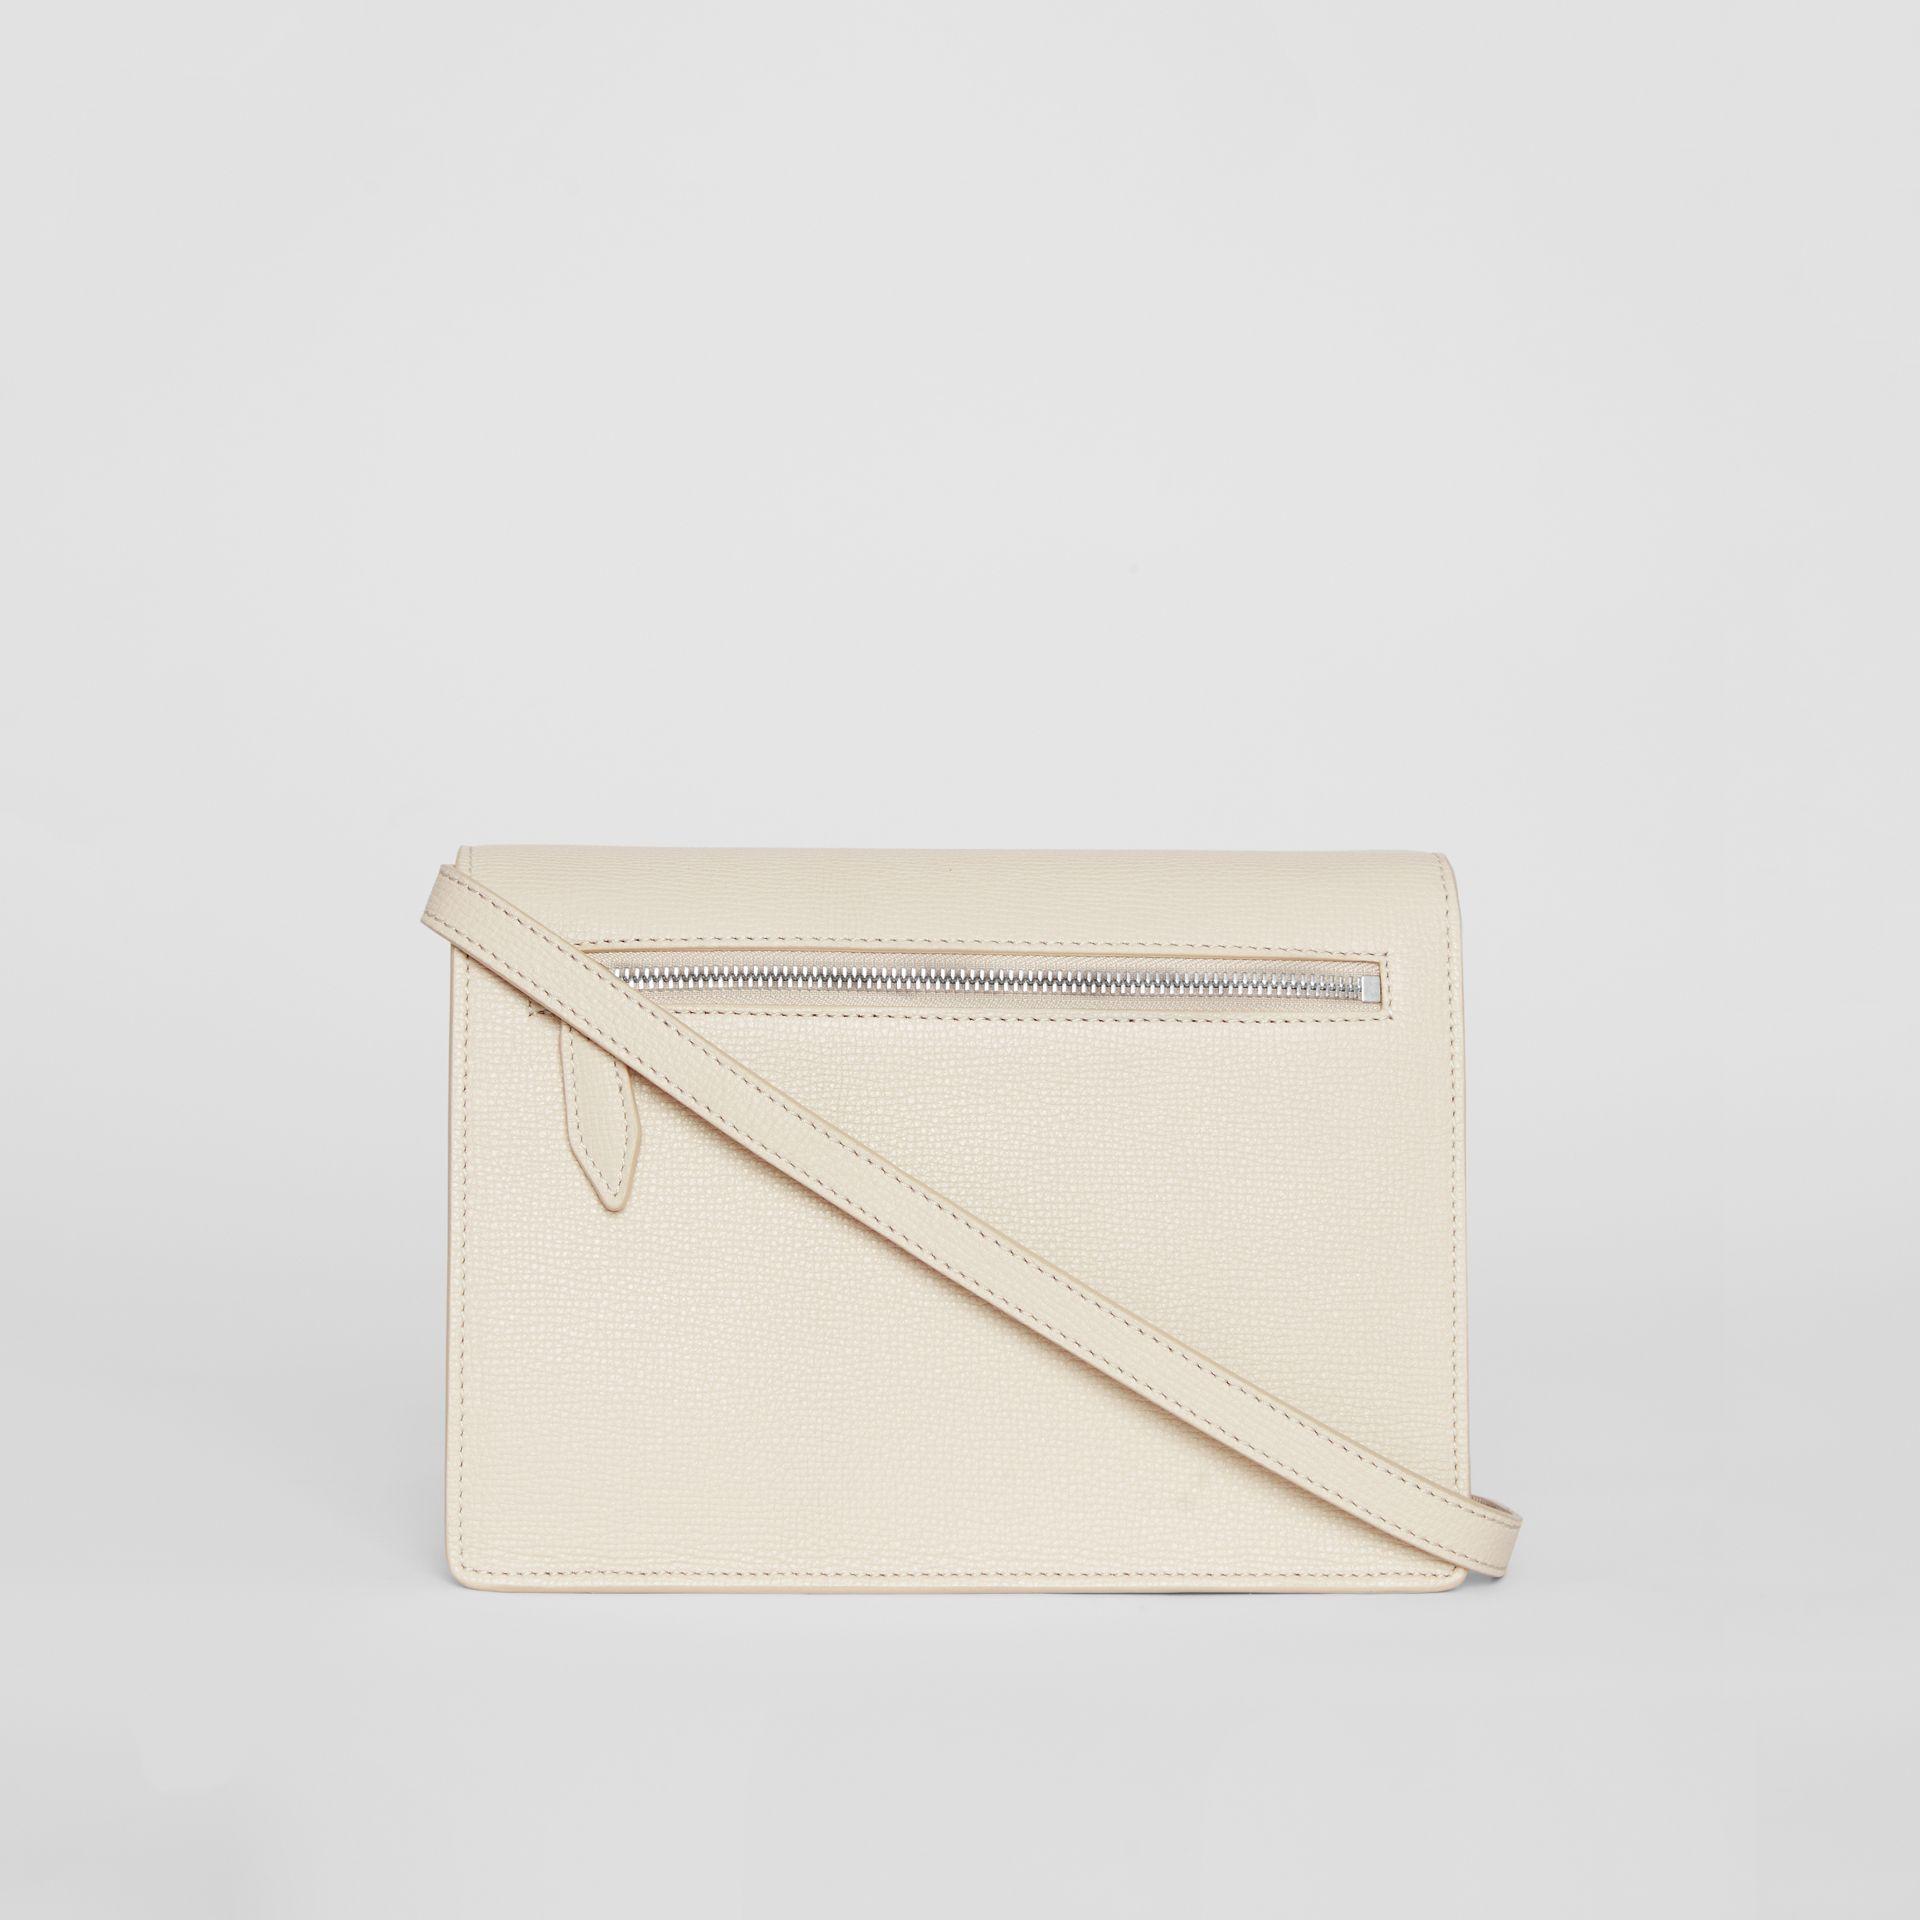 Small Vintage Check and Leather Crossbody Bag in Limestone - Women | Burberry - gallery image 7